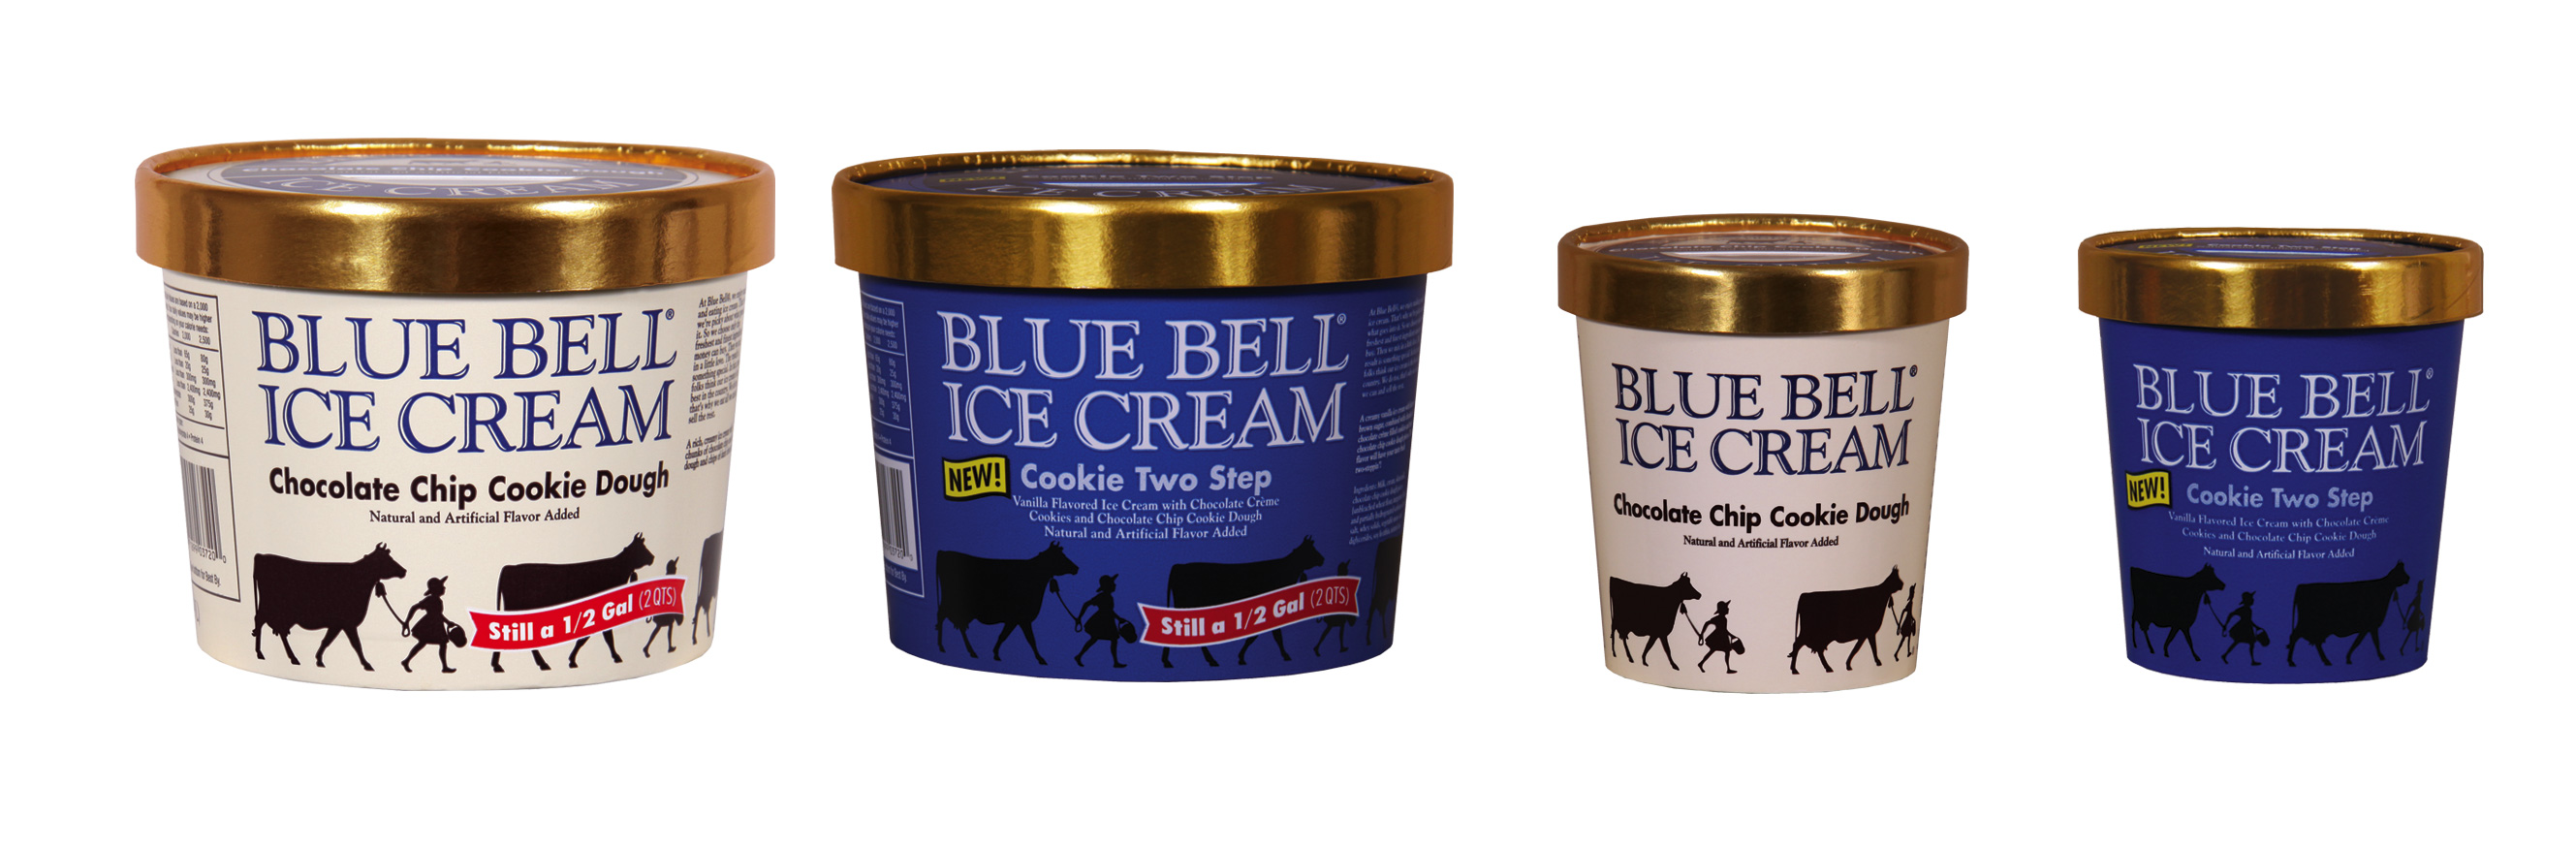 Blue Bell And Publix Recall More Cookie Dough Ice Cream Due To Supplier's Recall